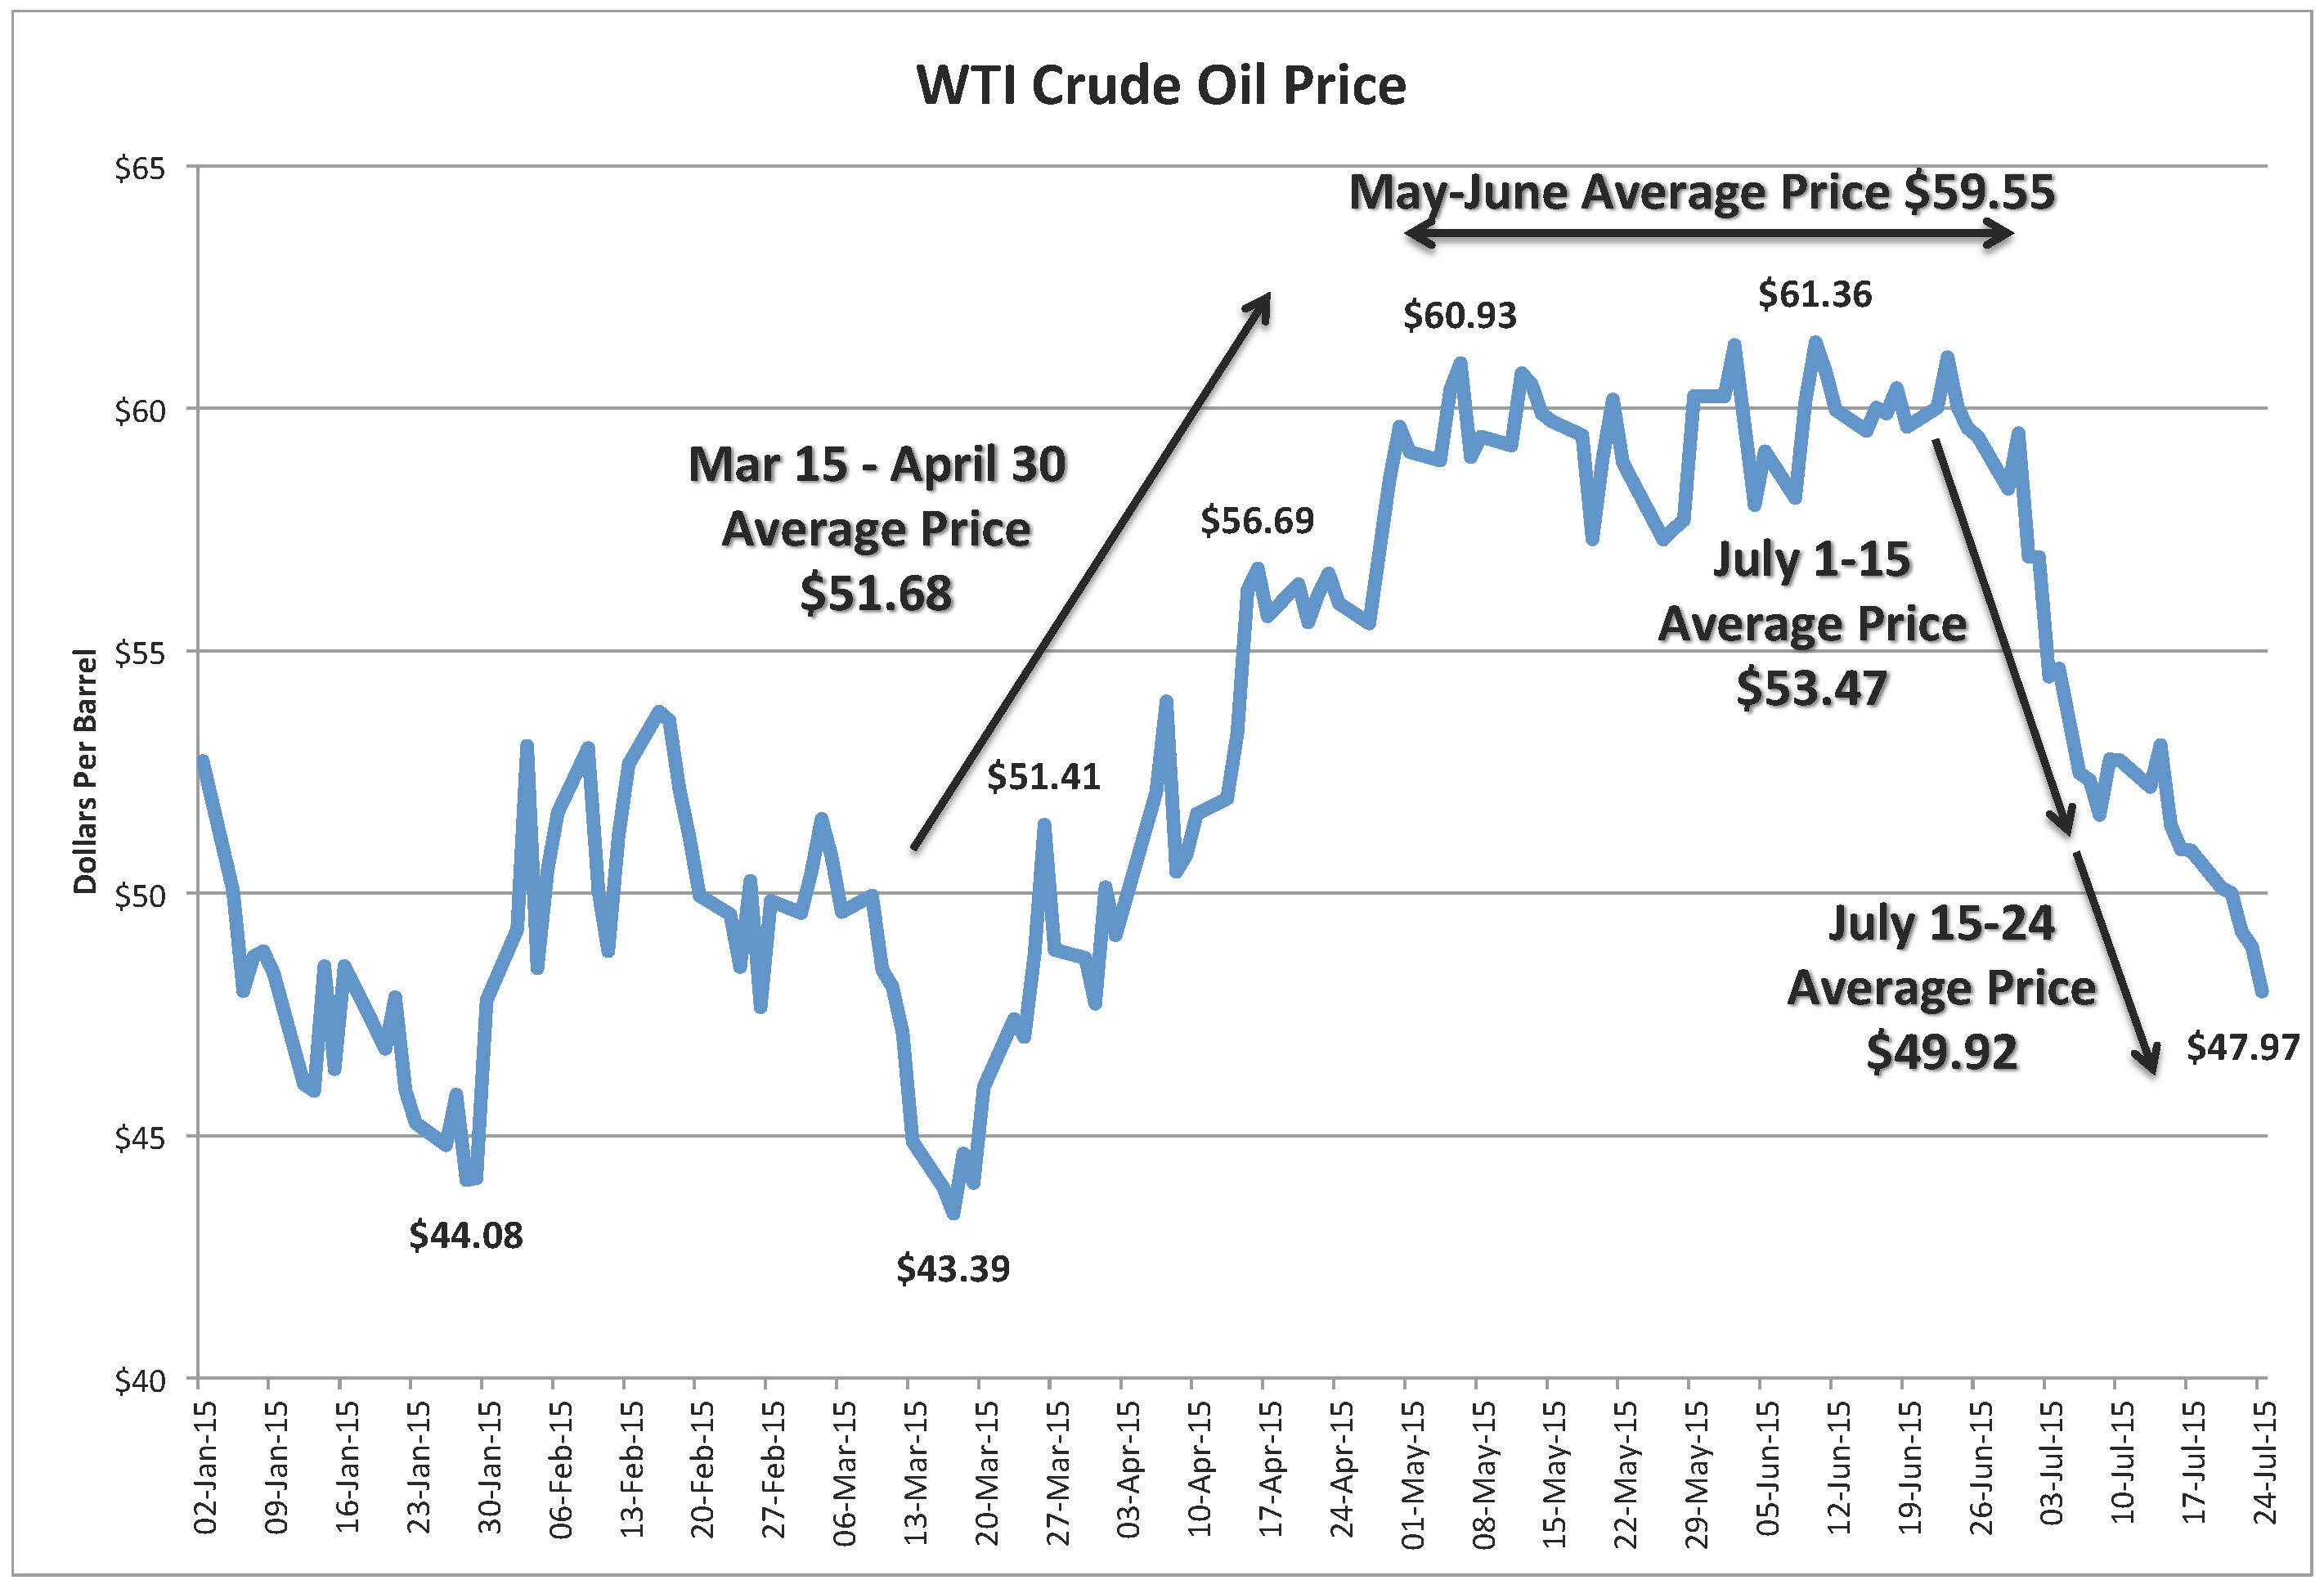 Crude Oil Quote Wti Crude Prices  Algorithmic Trading Books